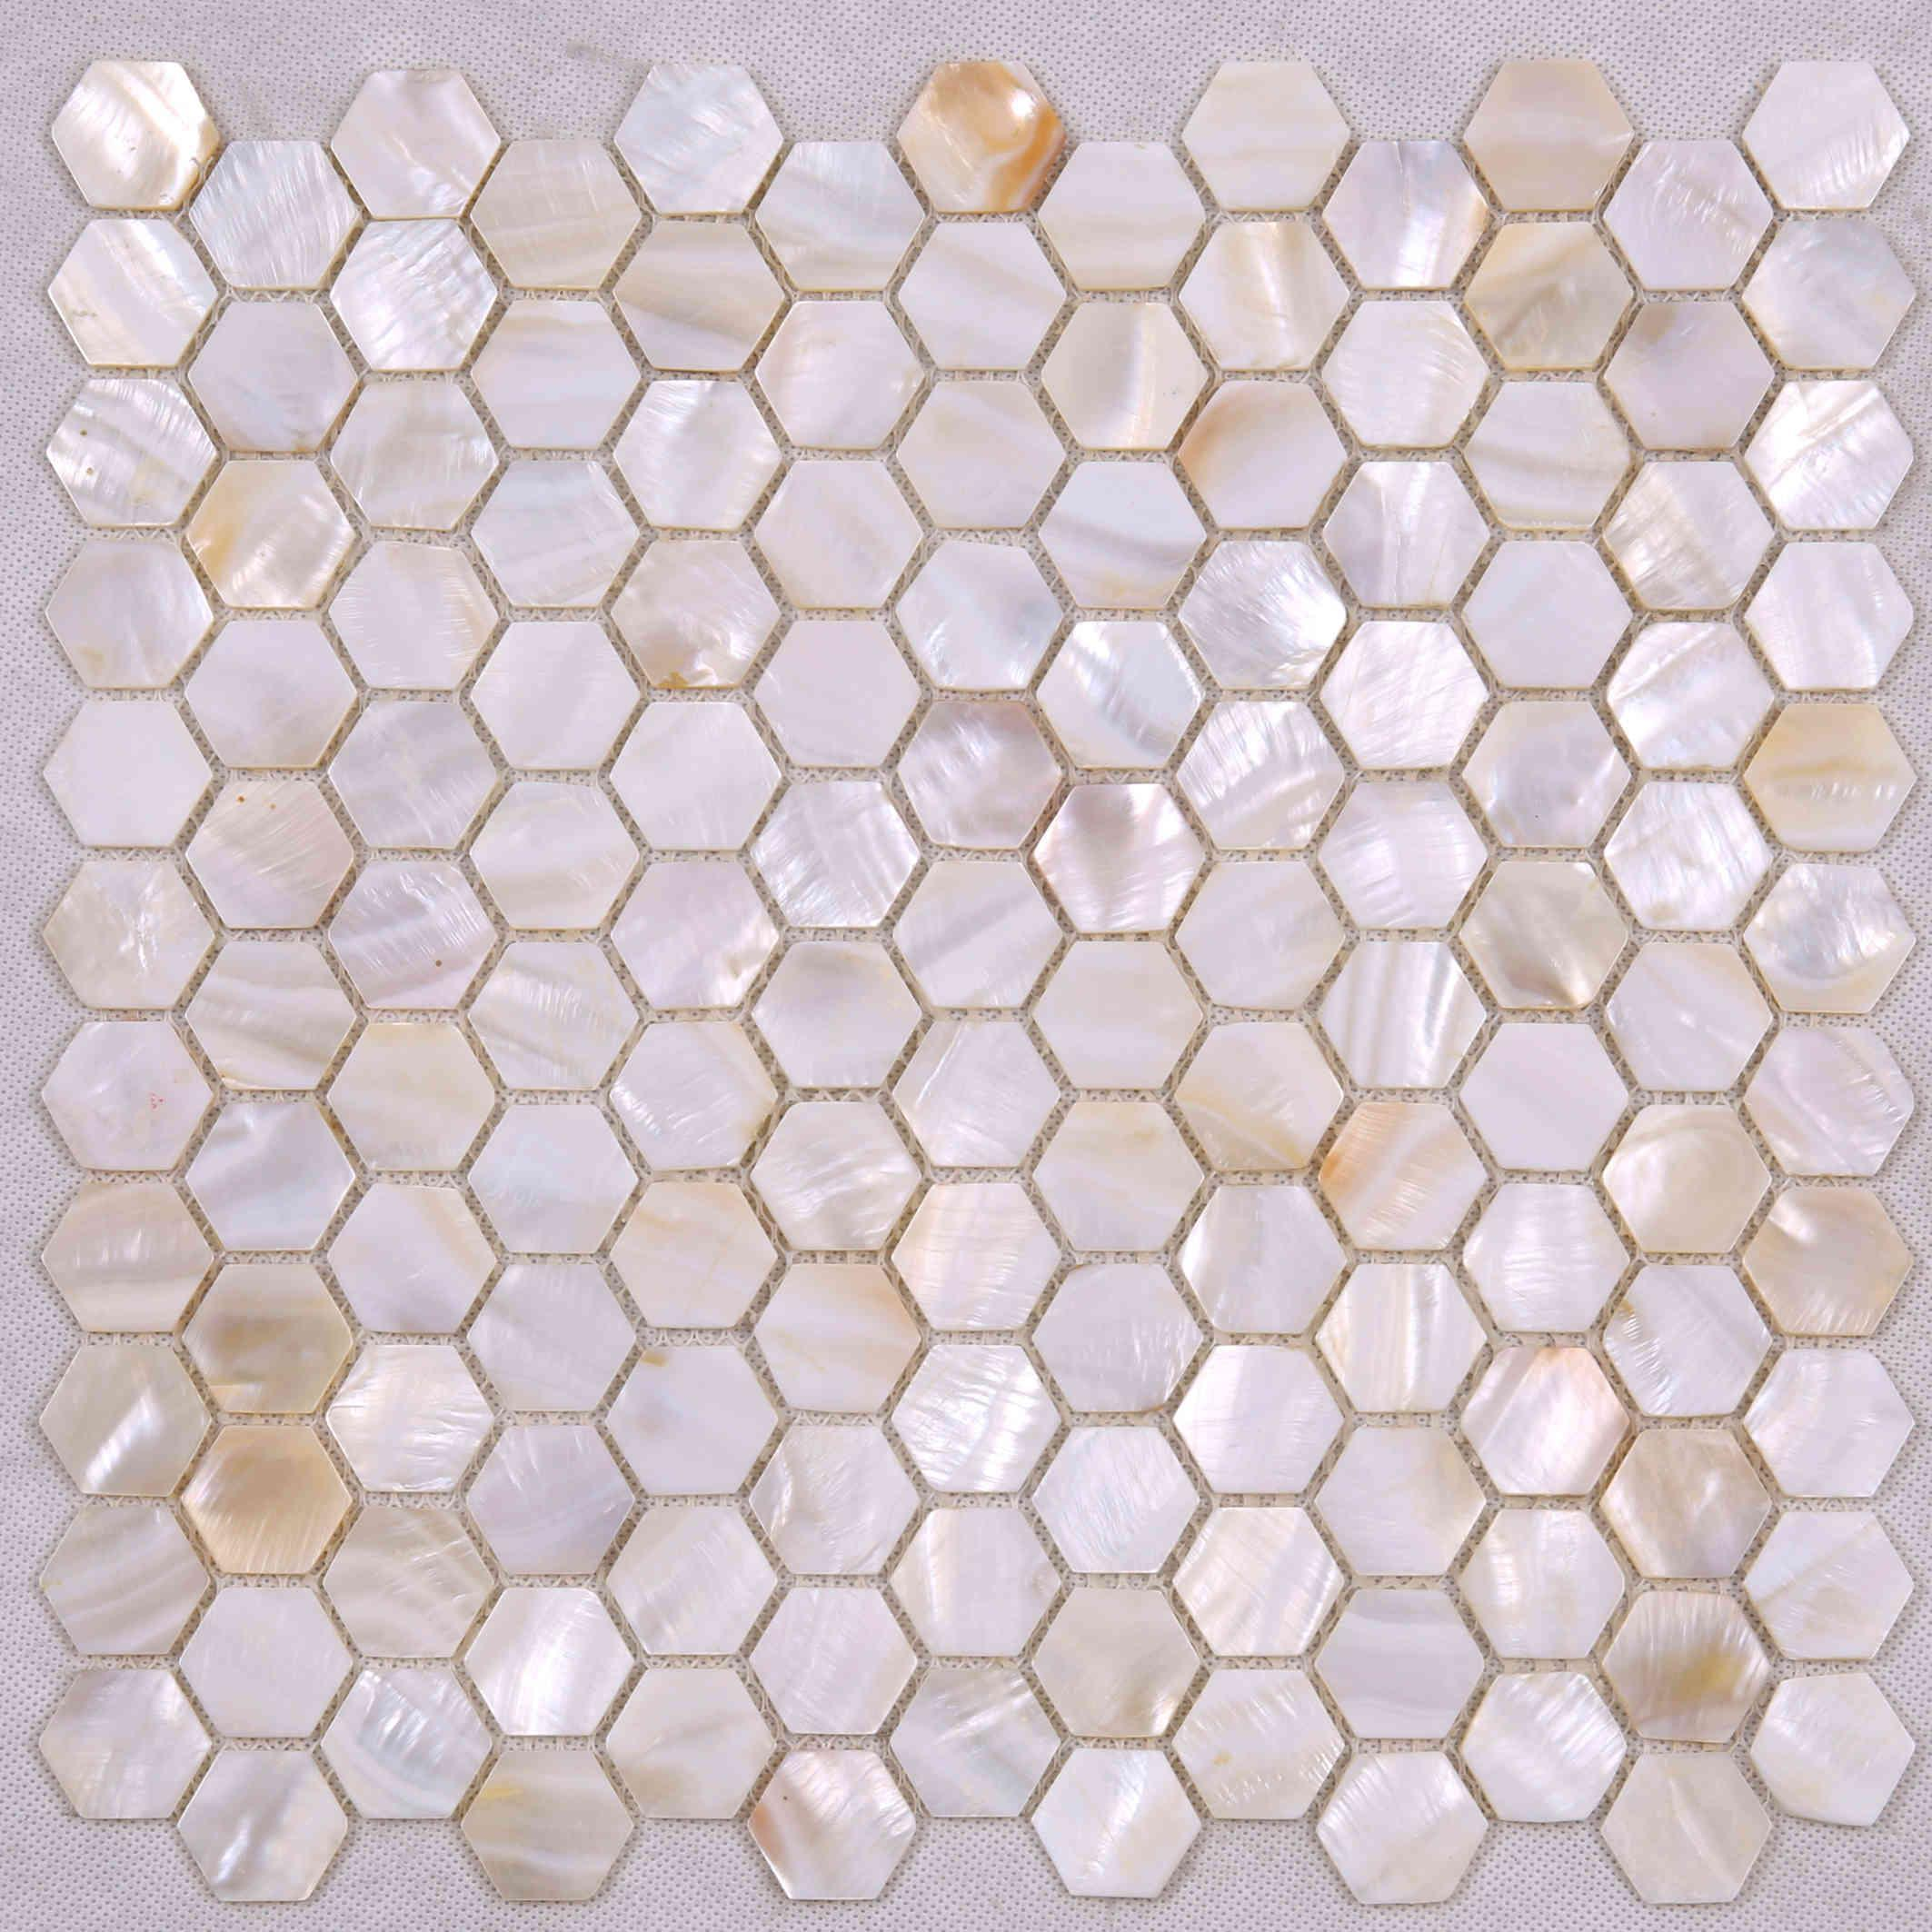 Heng Xing High-quality shell mosaic Suppliers-2